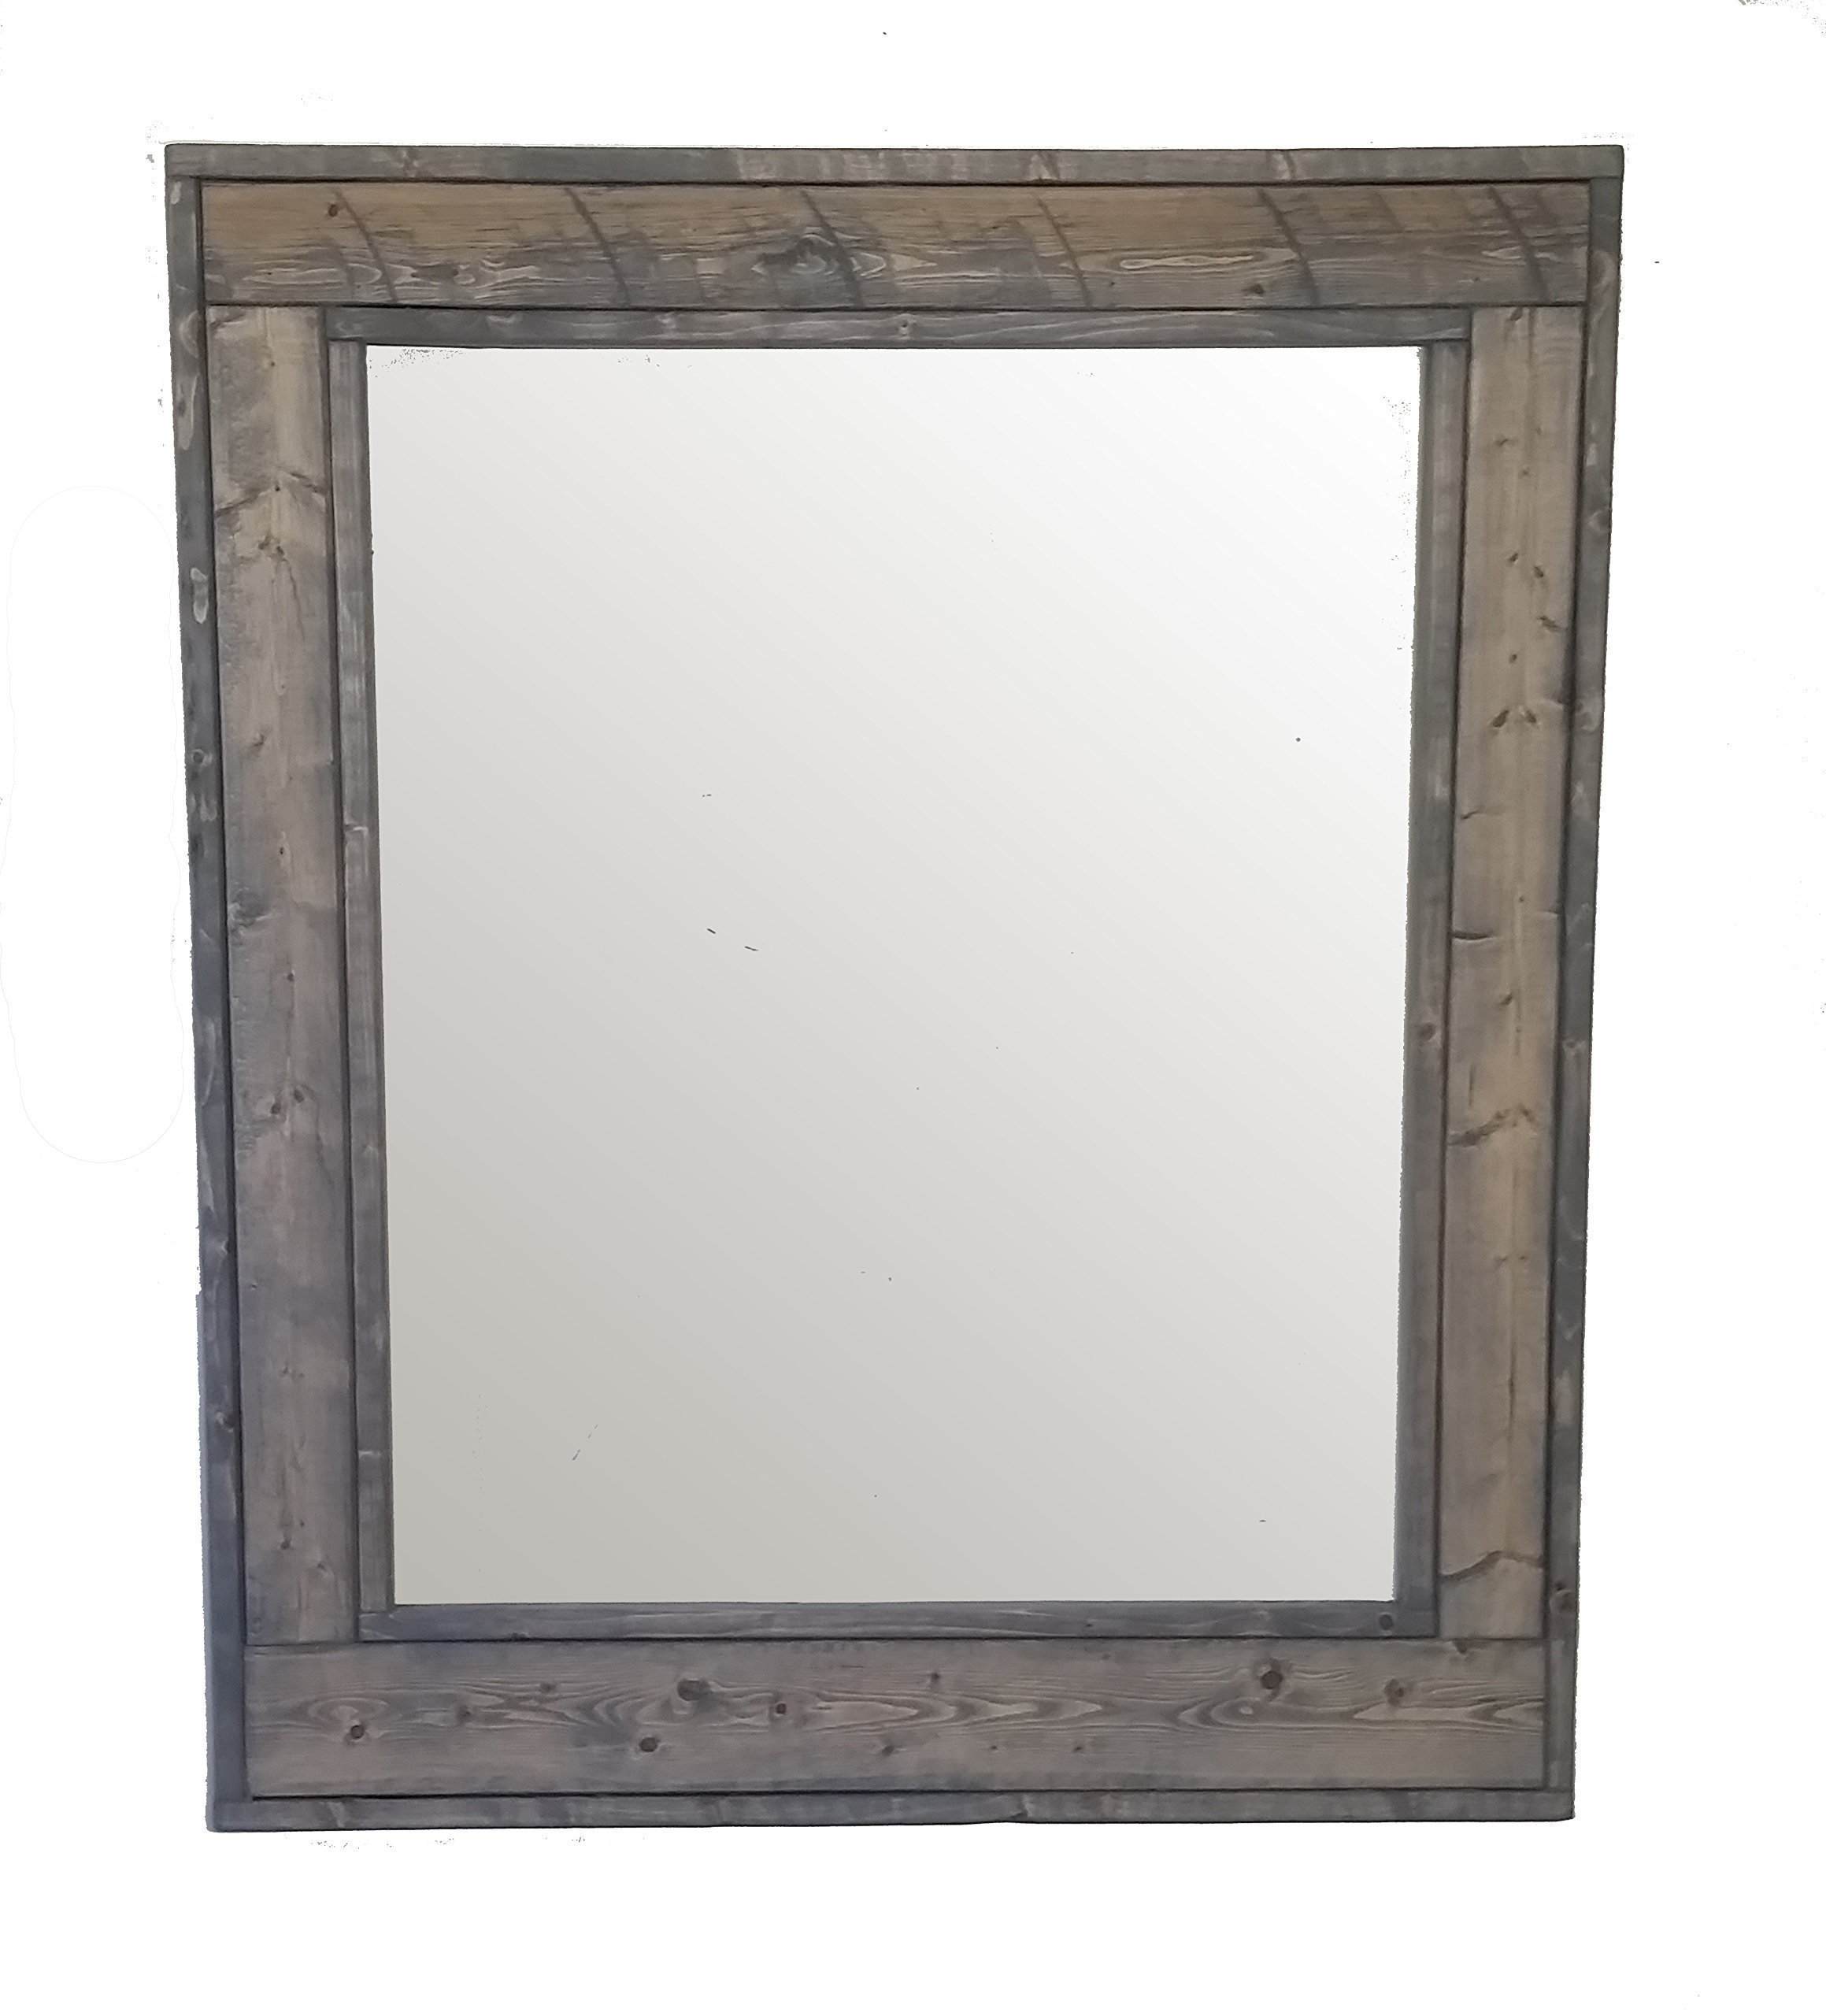 Renewed Decor Herringbone 30 x 36 inches Vertical Framed Mirror Stained in Classic Gray - Reclaimed Wood Mirror - Large Wall Mirror - Rustic Modern Home - Home Decor - Mirror - Housewares